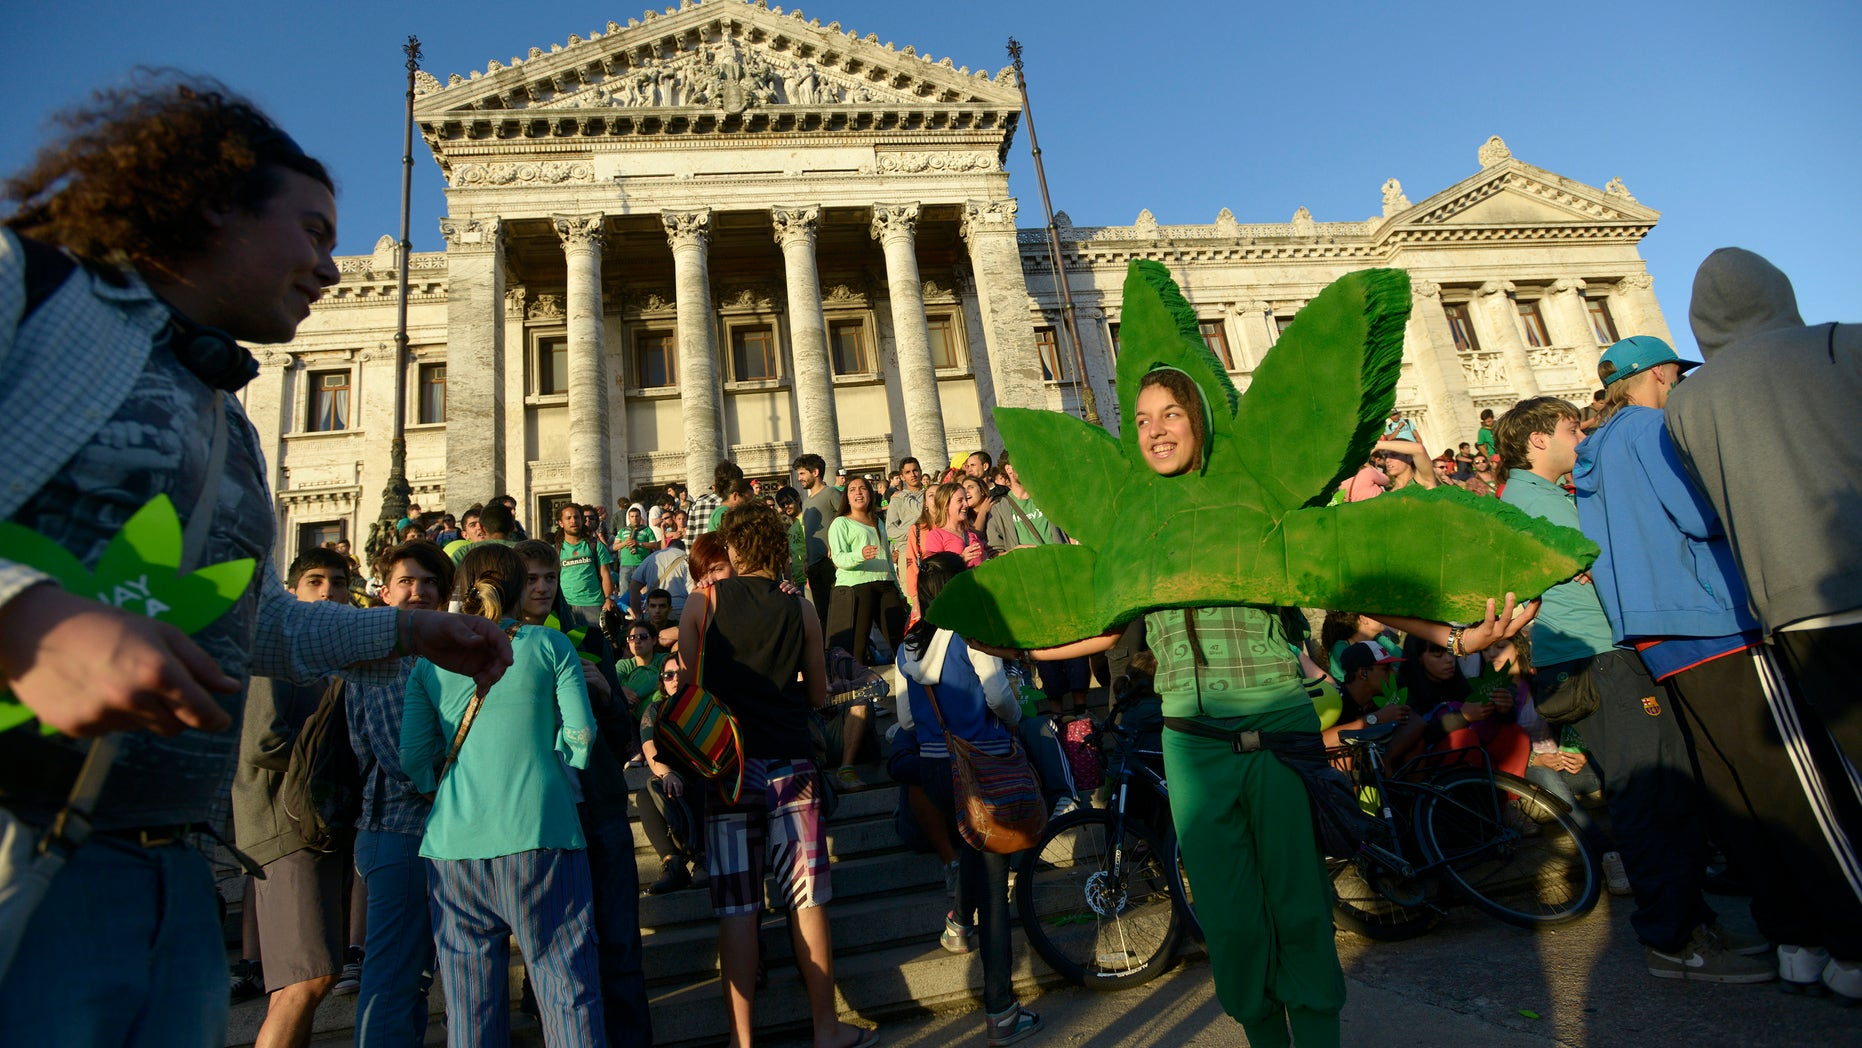 ADVANCE FOR USE SUNDAY, FEB. 16, 2014, AND THEREAFTER - FILE - In this Dec. 10, 2013 photo, people attend a demonstration in support of the legalization of marijuana outside the Congress in Montevideo, Uruguay. Uruguay's Senate approved the world's first national marketplace for legal marijuana. From the Americas to Europe to North Africa and beyond, the marijuana legalization movement has unprecedented traction, a nod to successful efforts in Colorado, Washington and the small South American nation of Uruguay, which became the first country to approve nationwide pot legalization. (AP Photo/Matilde Campodonico, File)